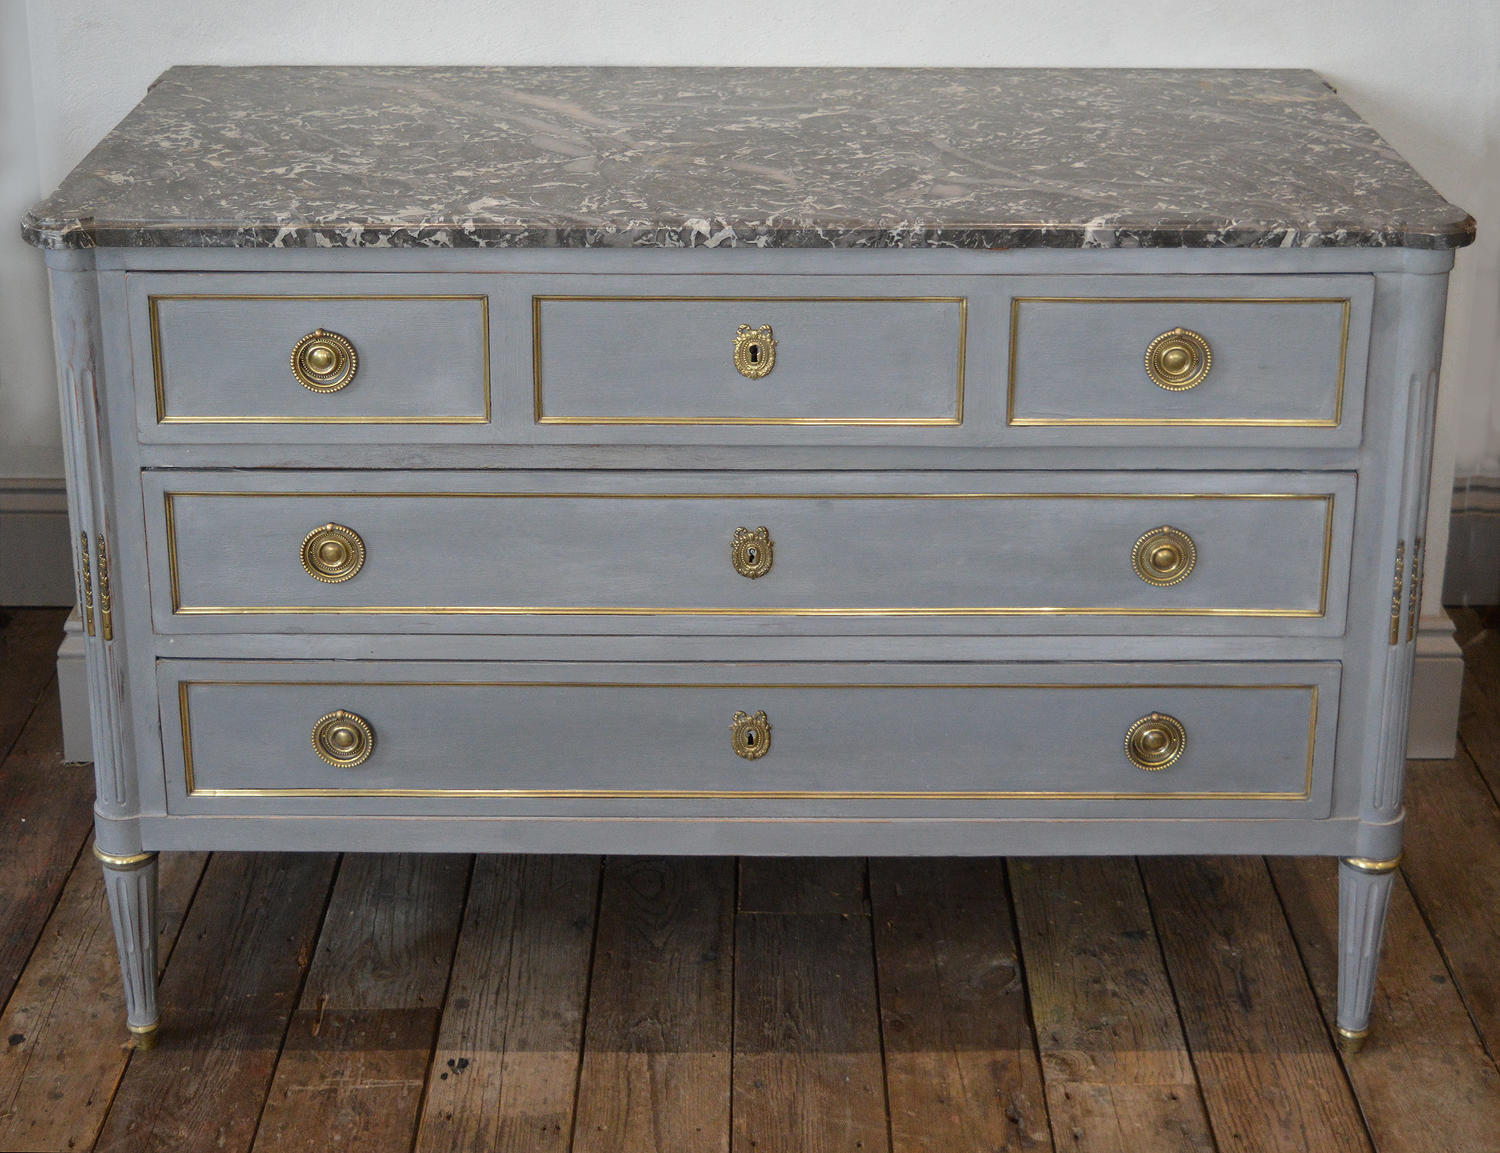 Late 19th Century Louis XVI style marble top commode